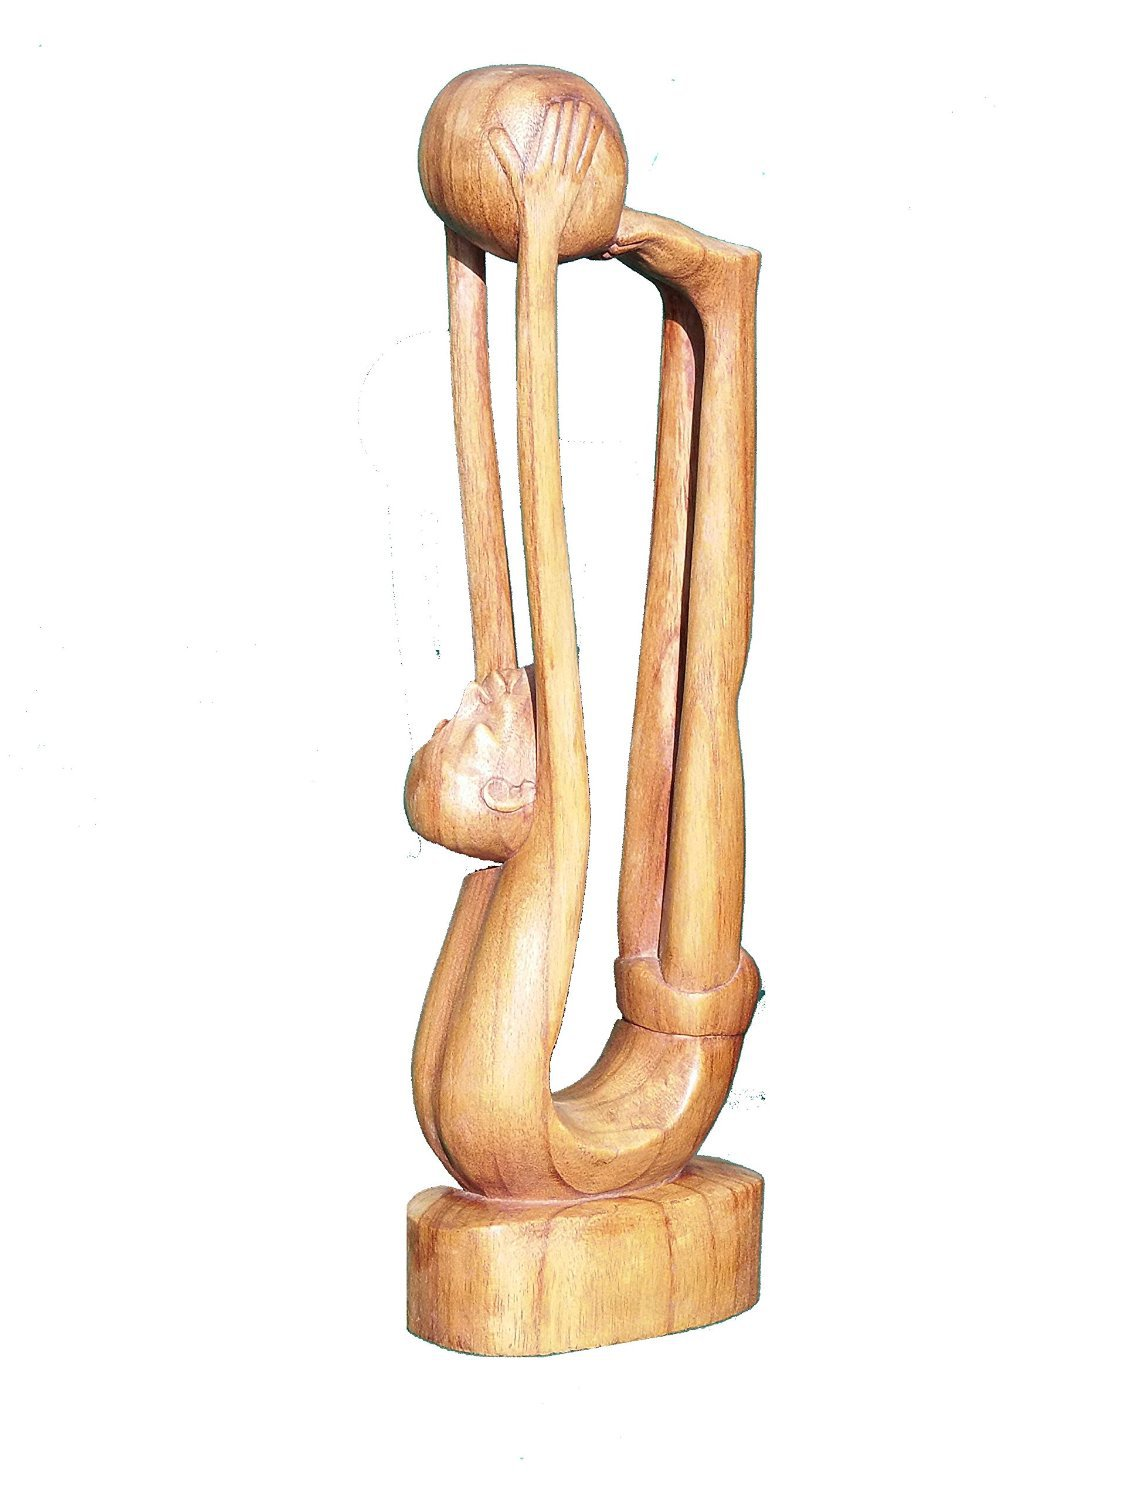 Contemporay wooden figure